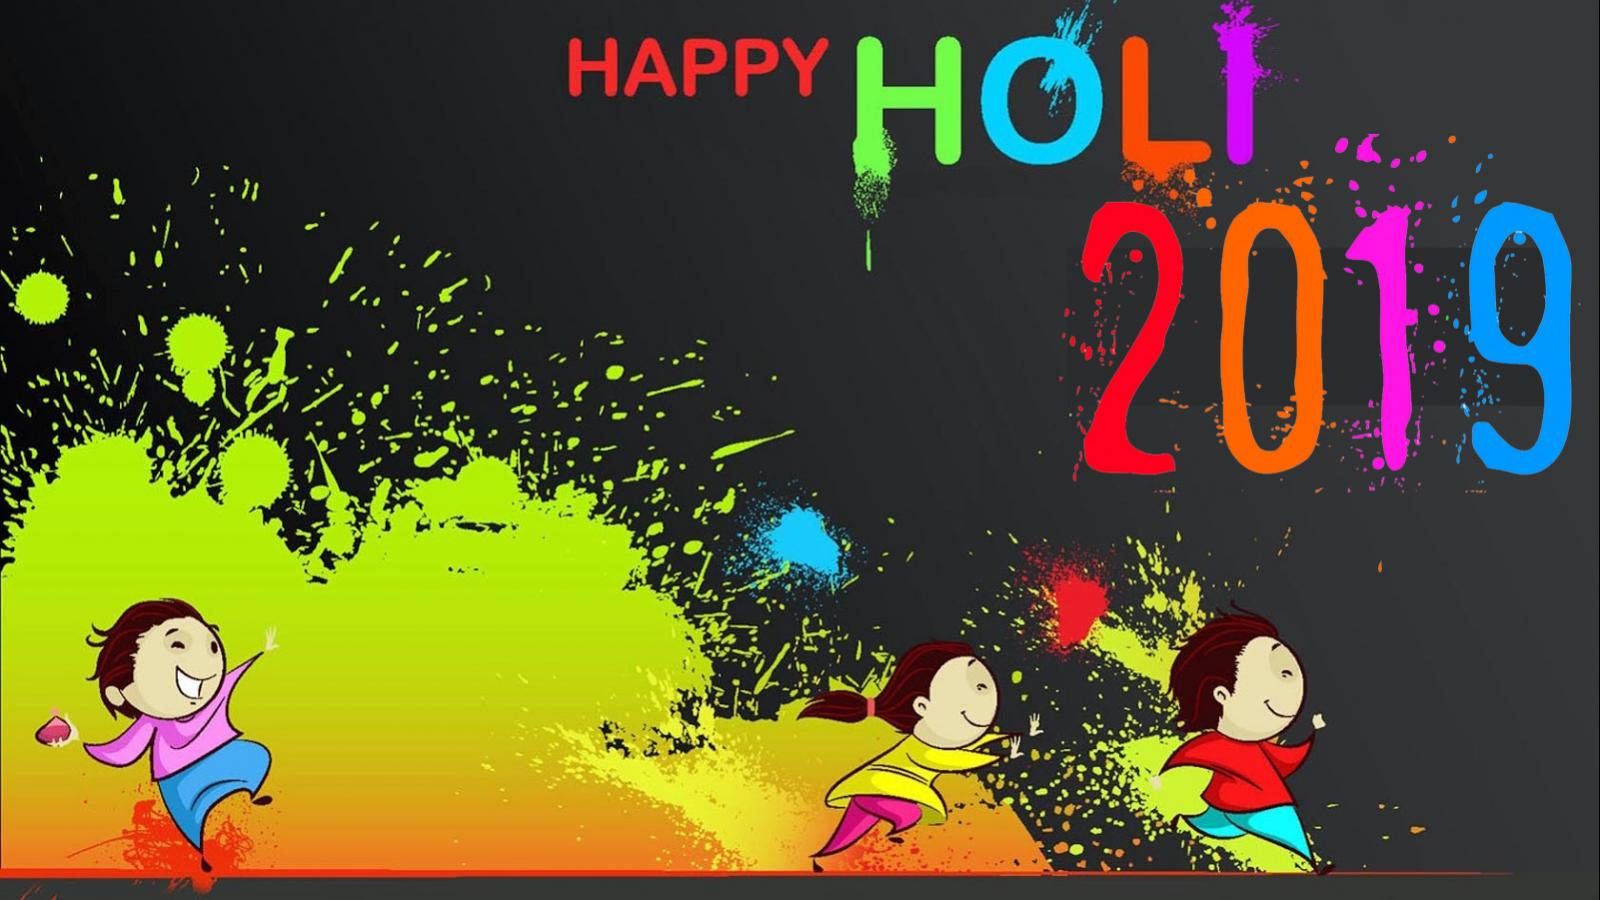 happy holi wallpaper 2018 for kids | hd wallpapers | wallpapers